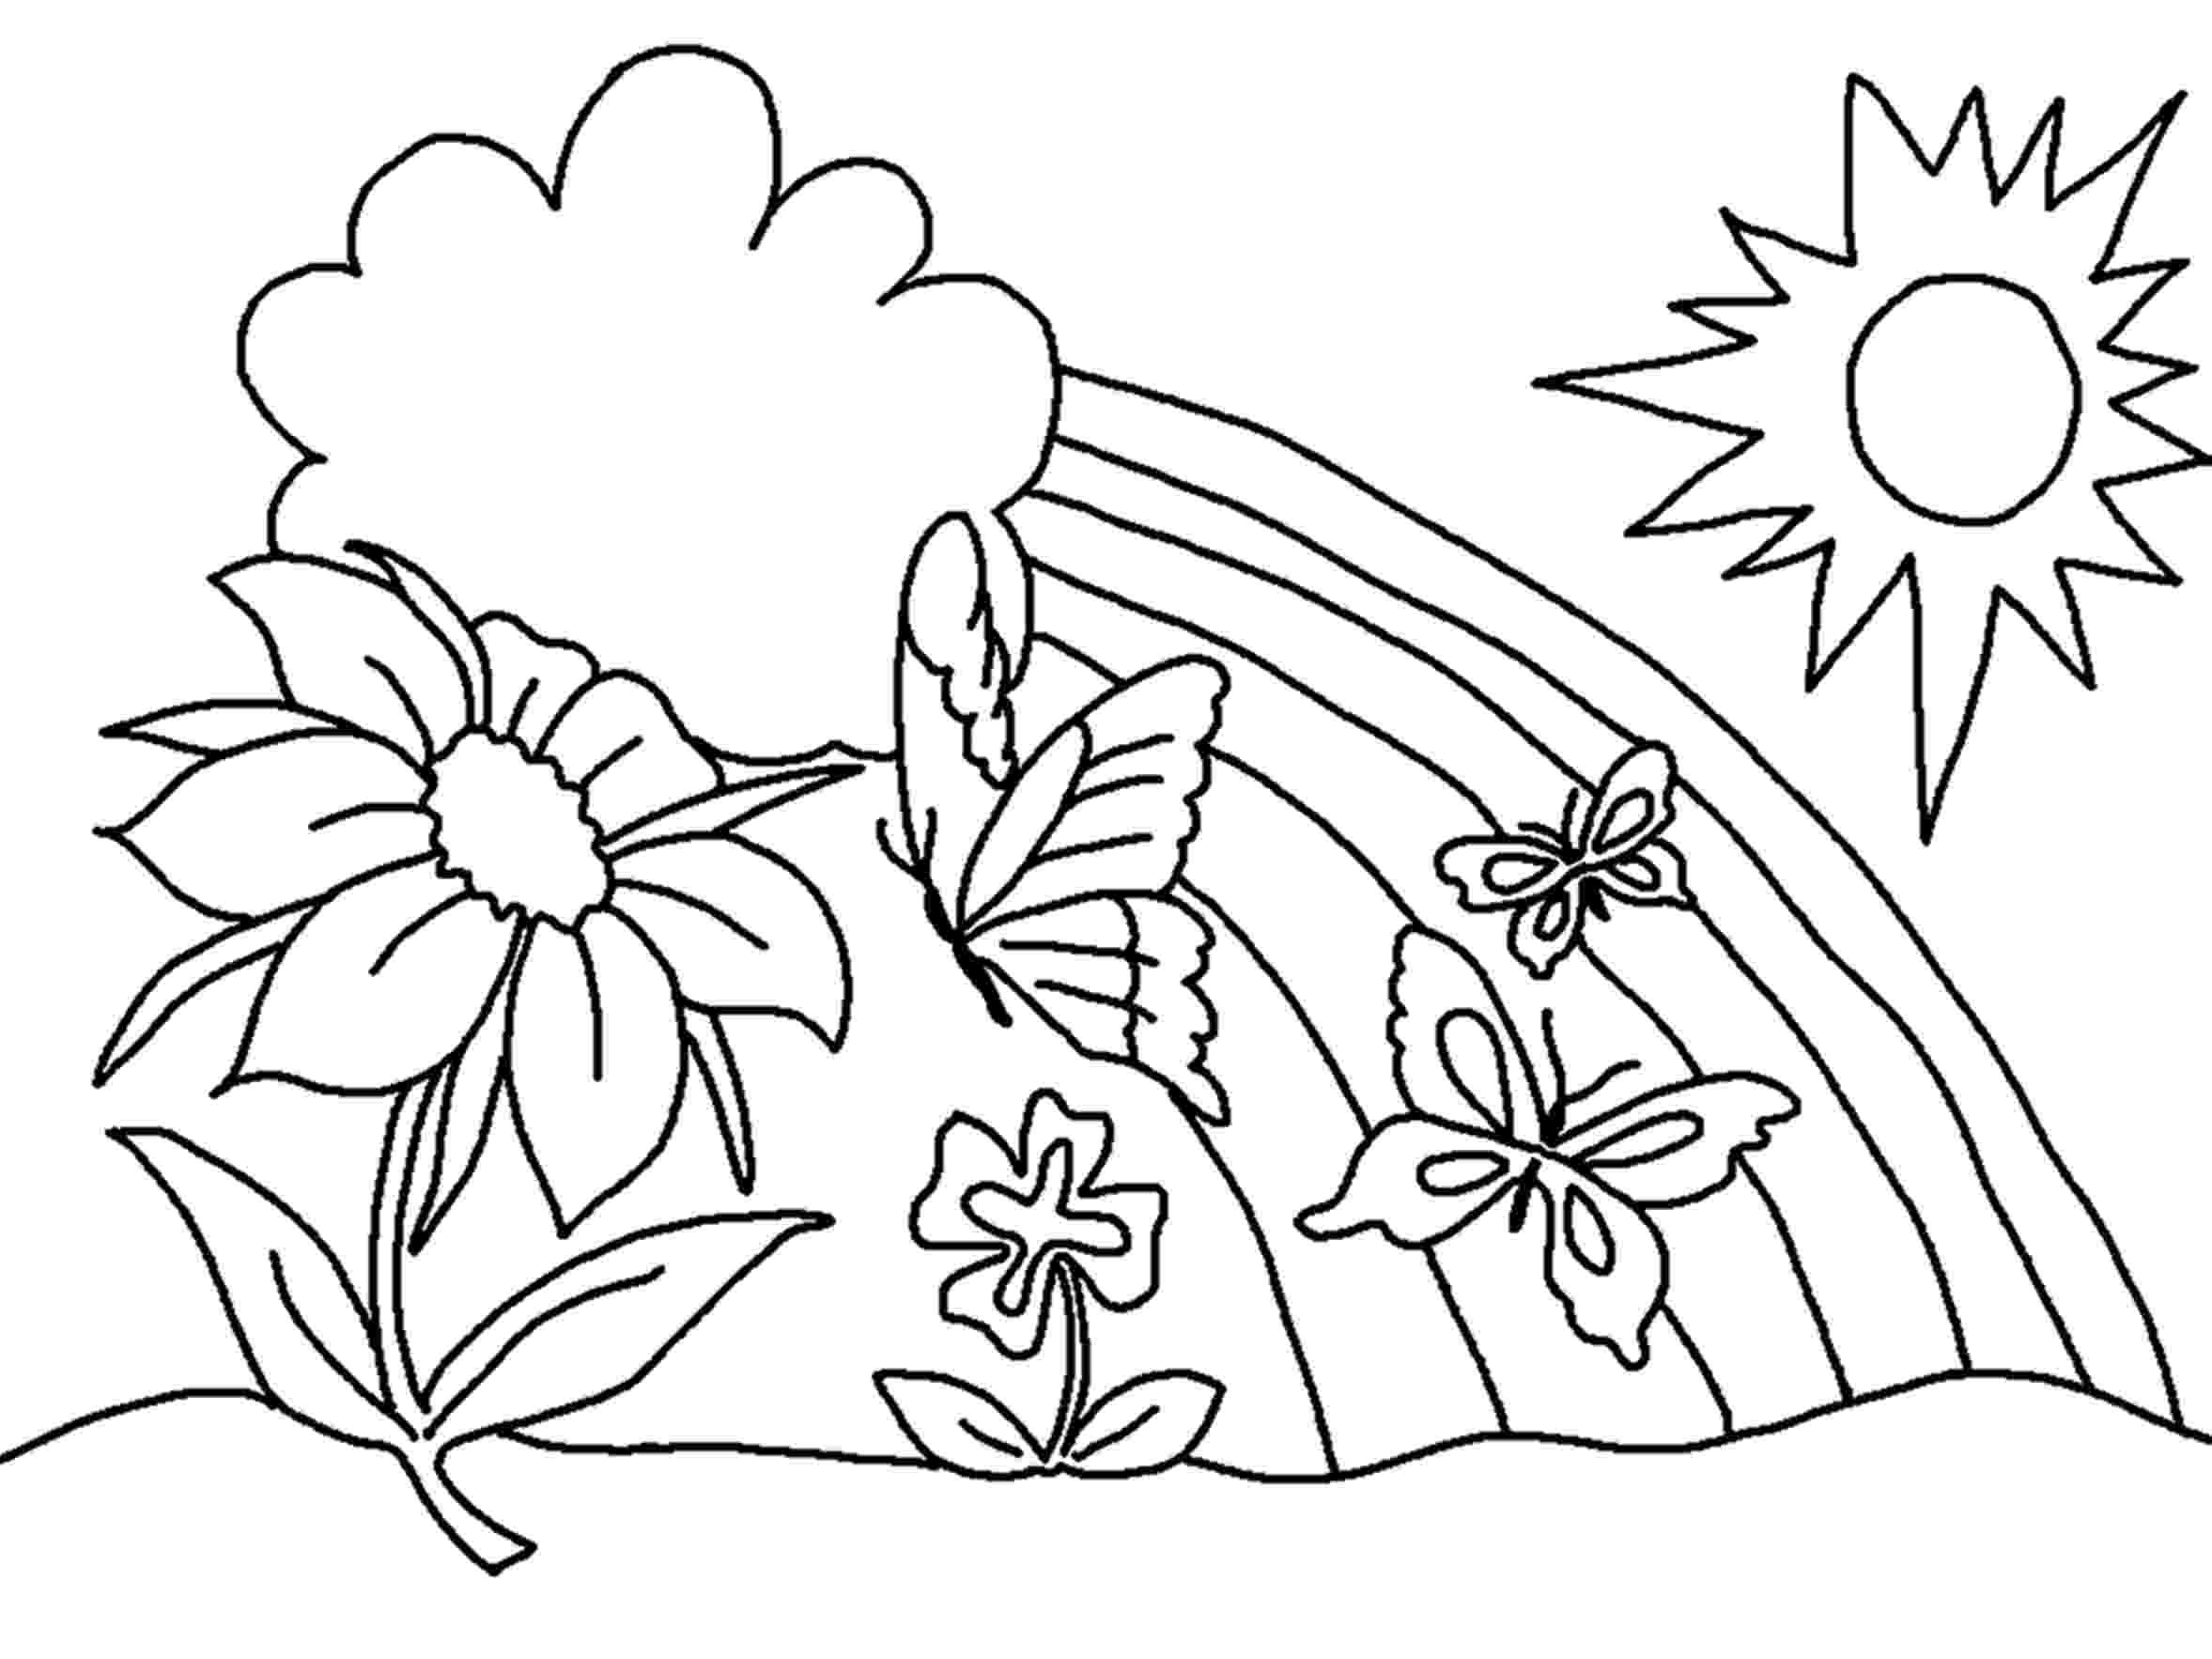 free printable spring flower coloring pages spring flowers drawing at getdrawingscom free for spring printable coloring flower free pages